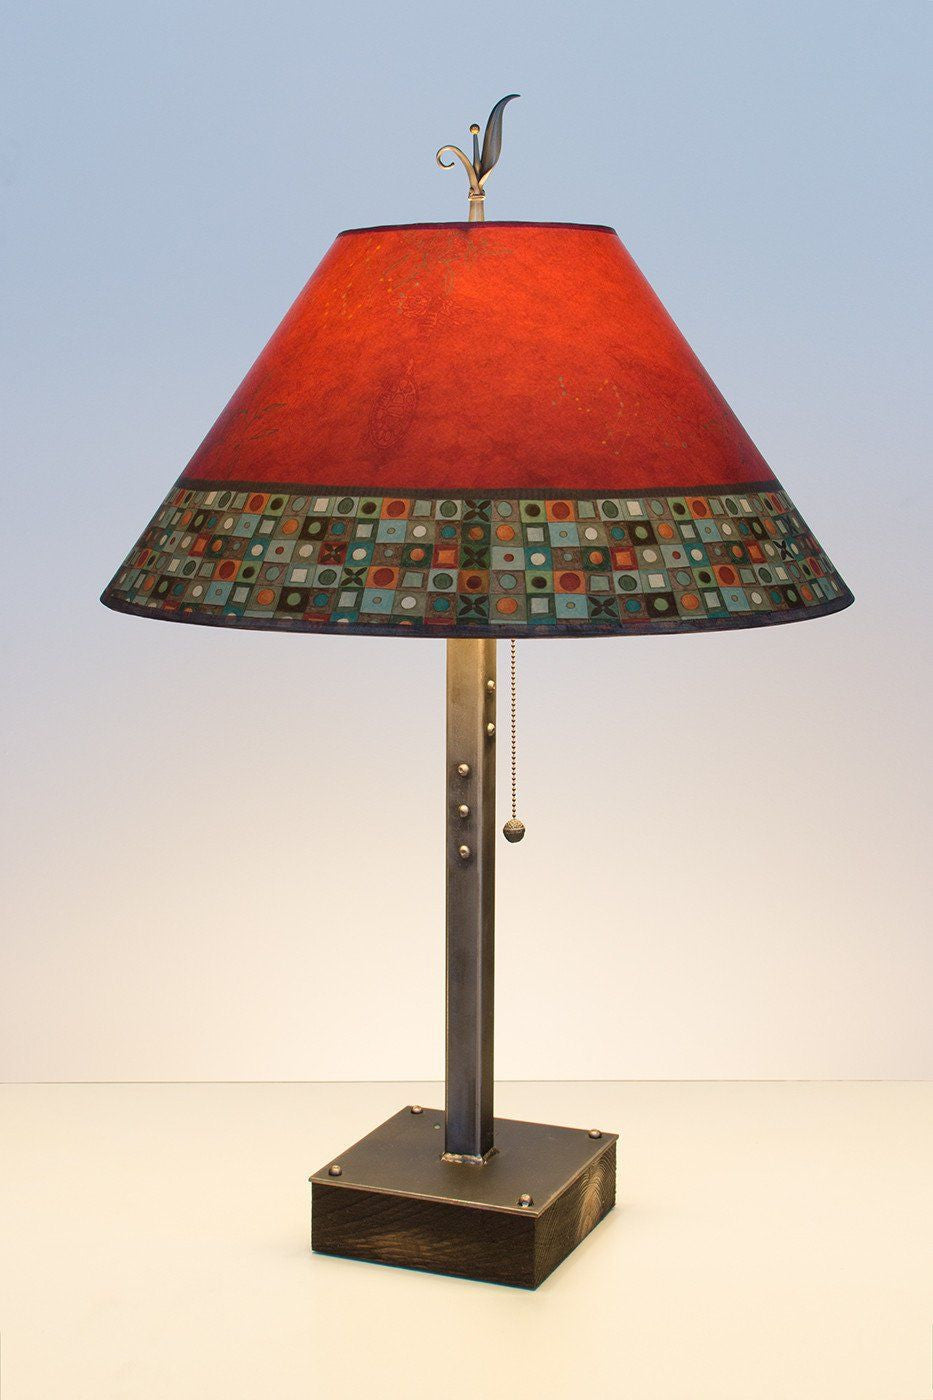 Steel table lamp on wood with large conical shade in red mosaic steel table lamp on wood with large conical shade in red mosaic geotapseo Gallery